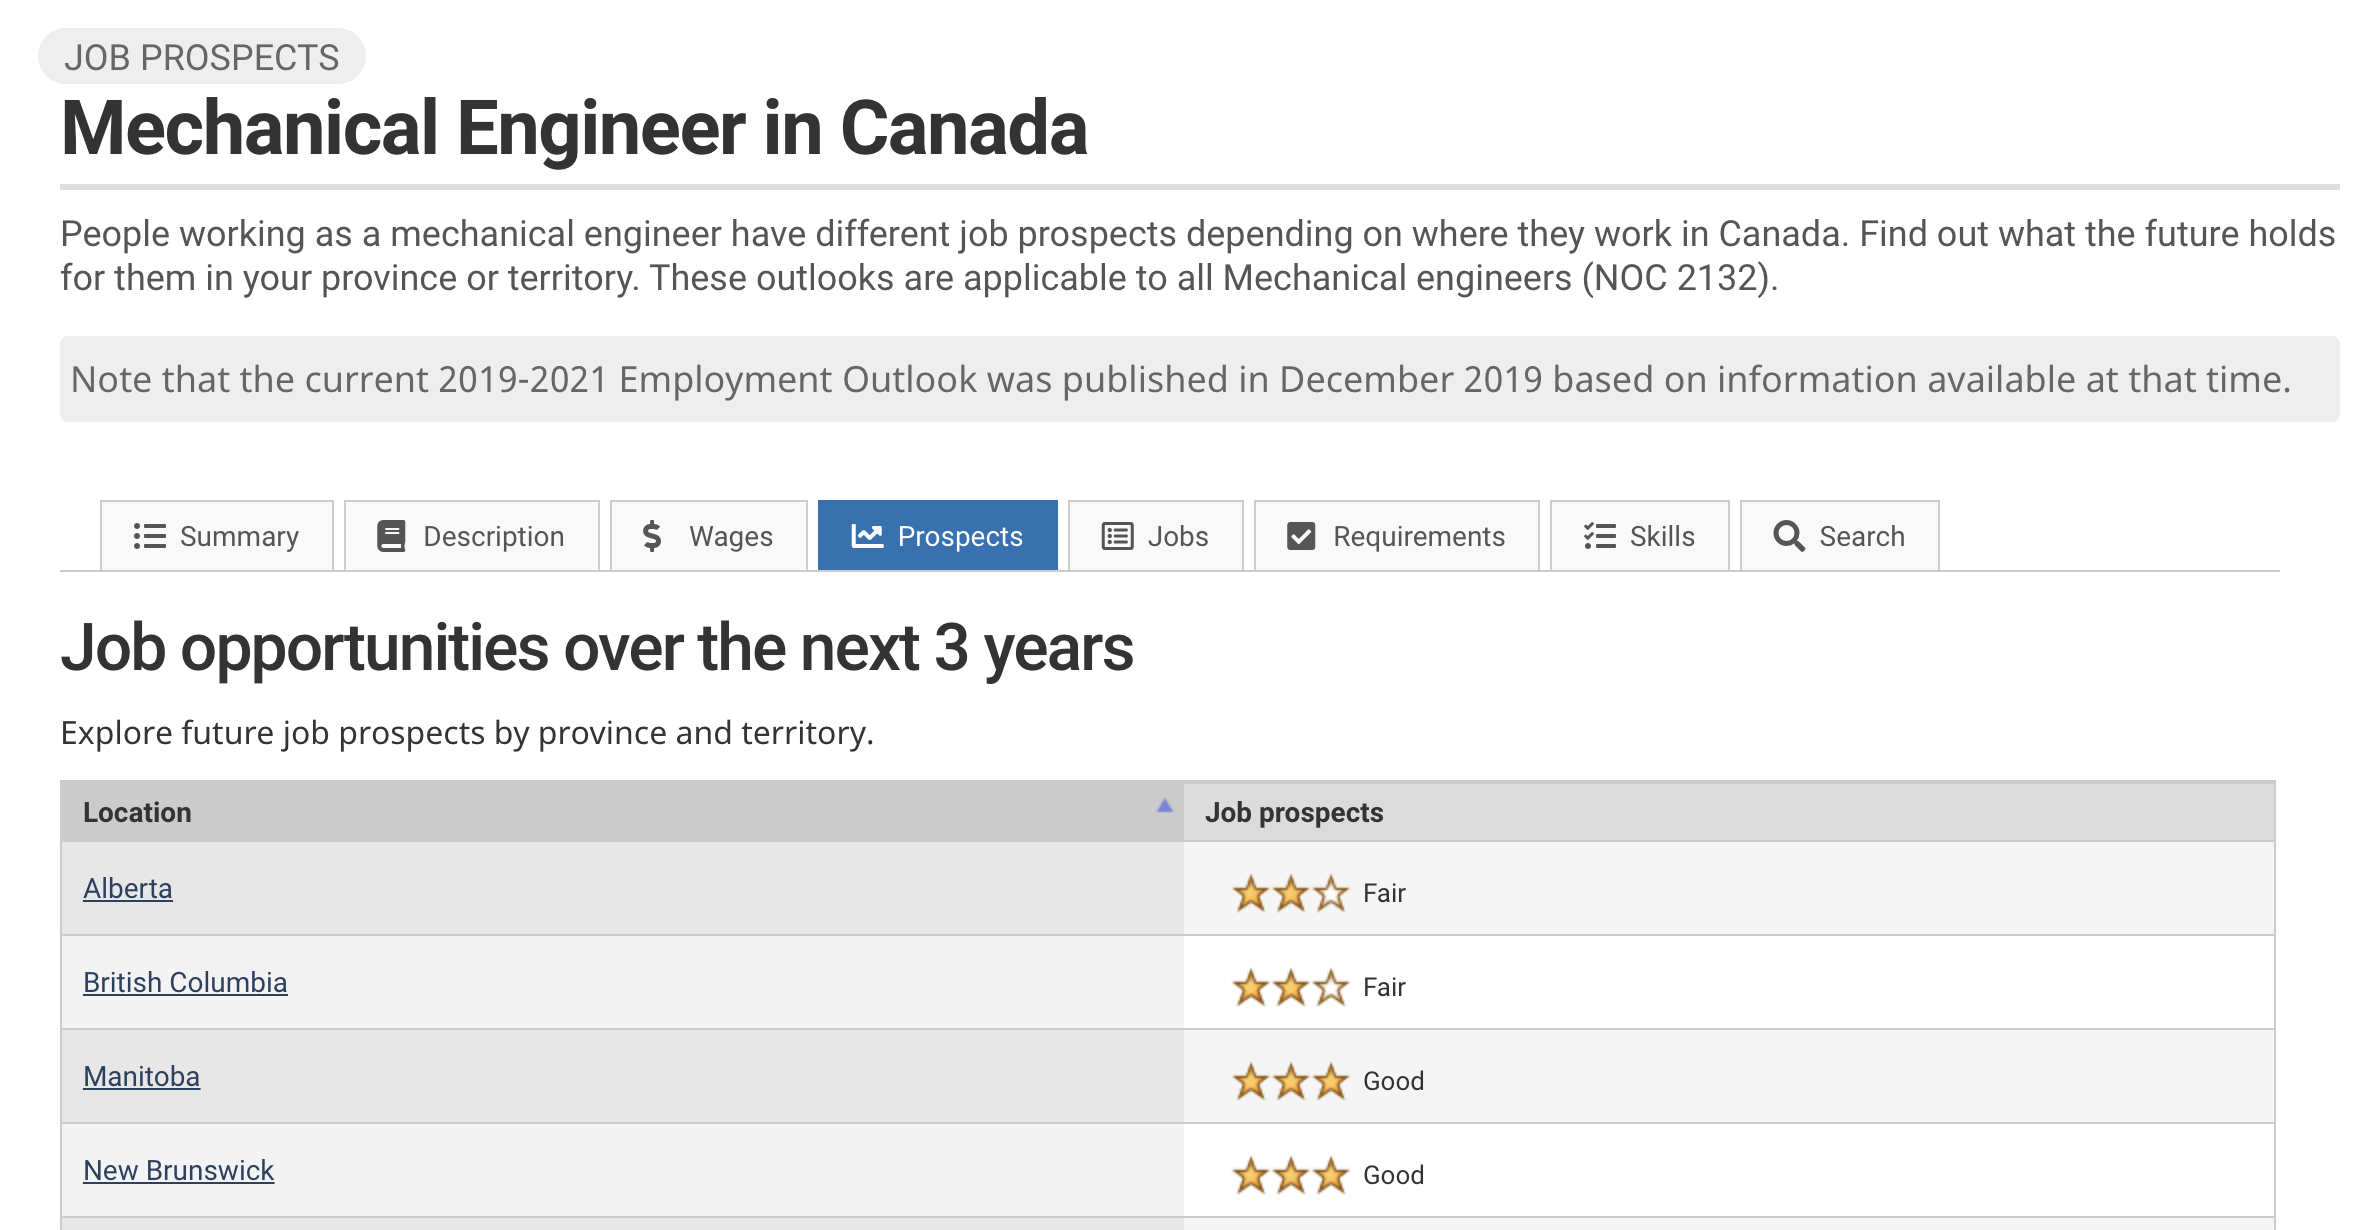 Image showing StatCan job prospects and trends for a Mechanical Engineer in Canada